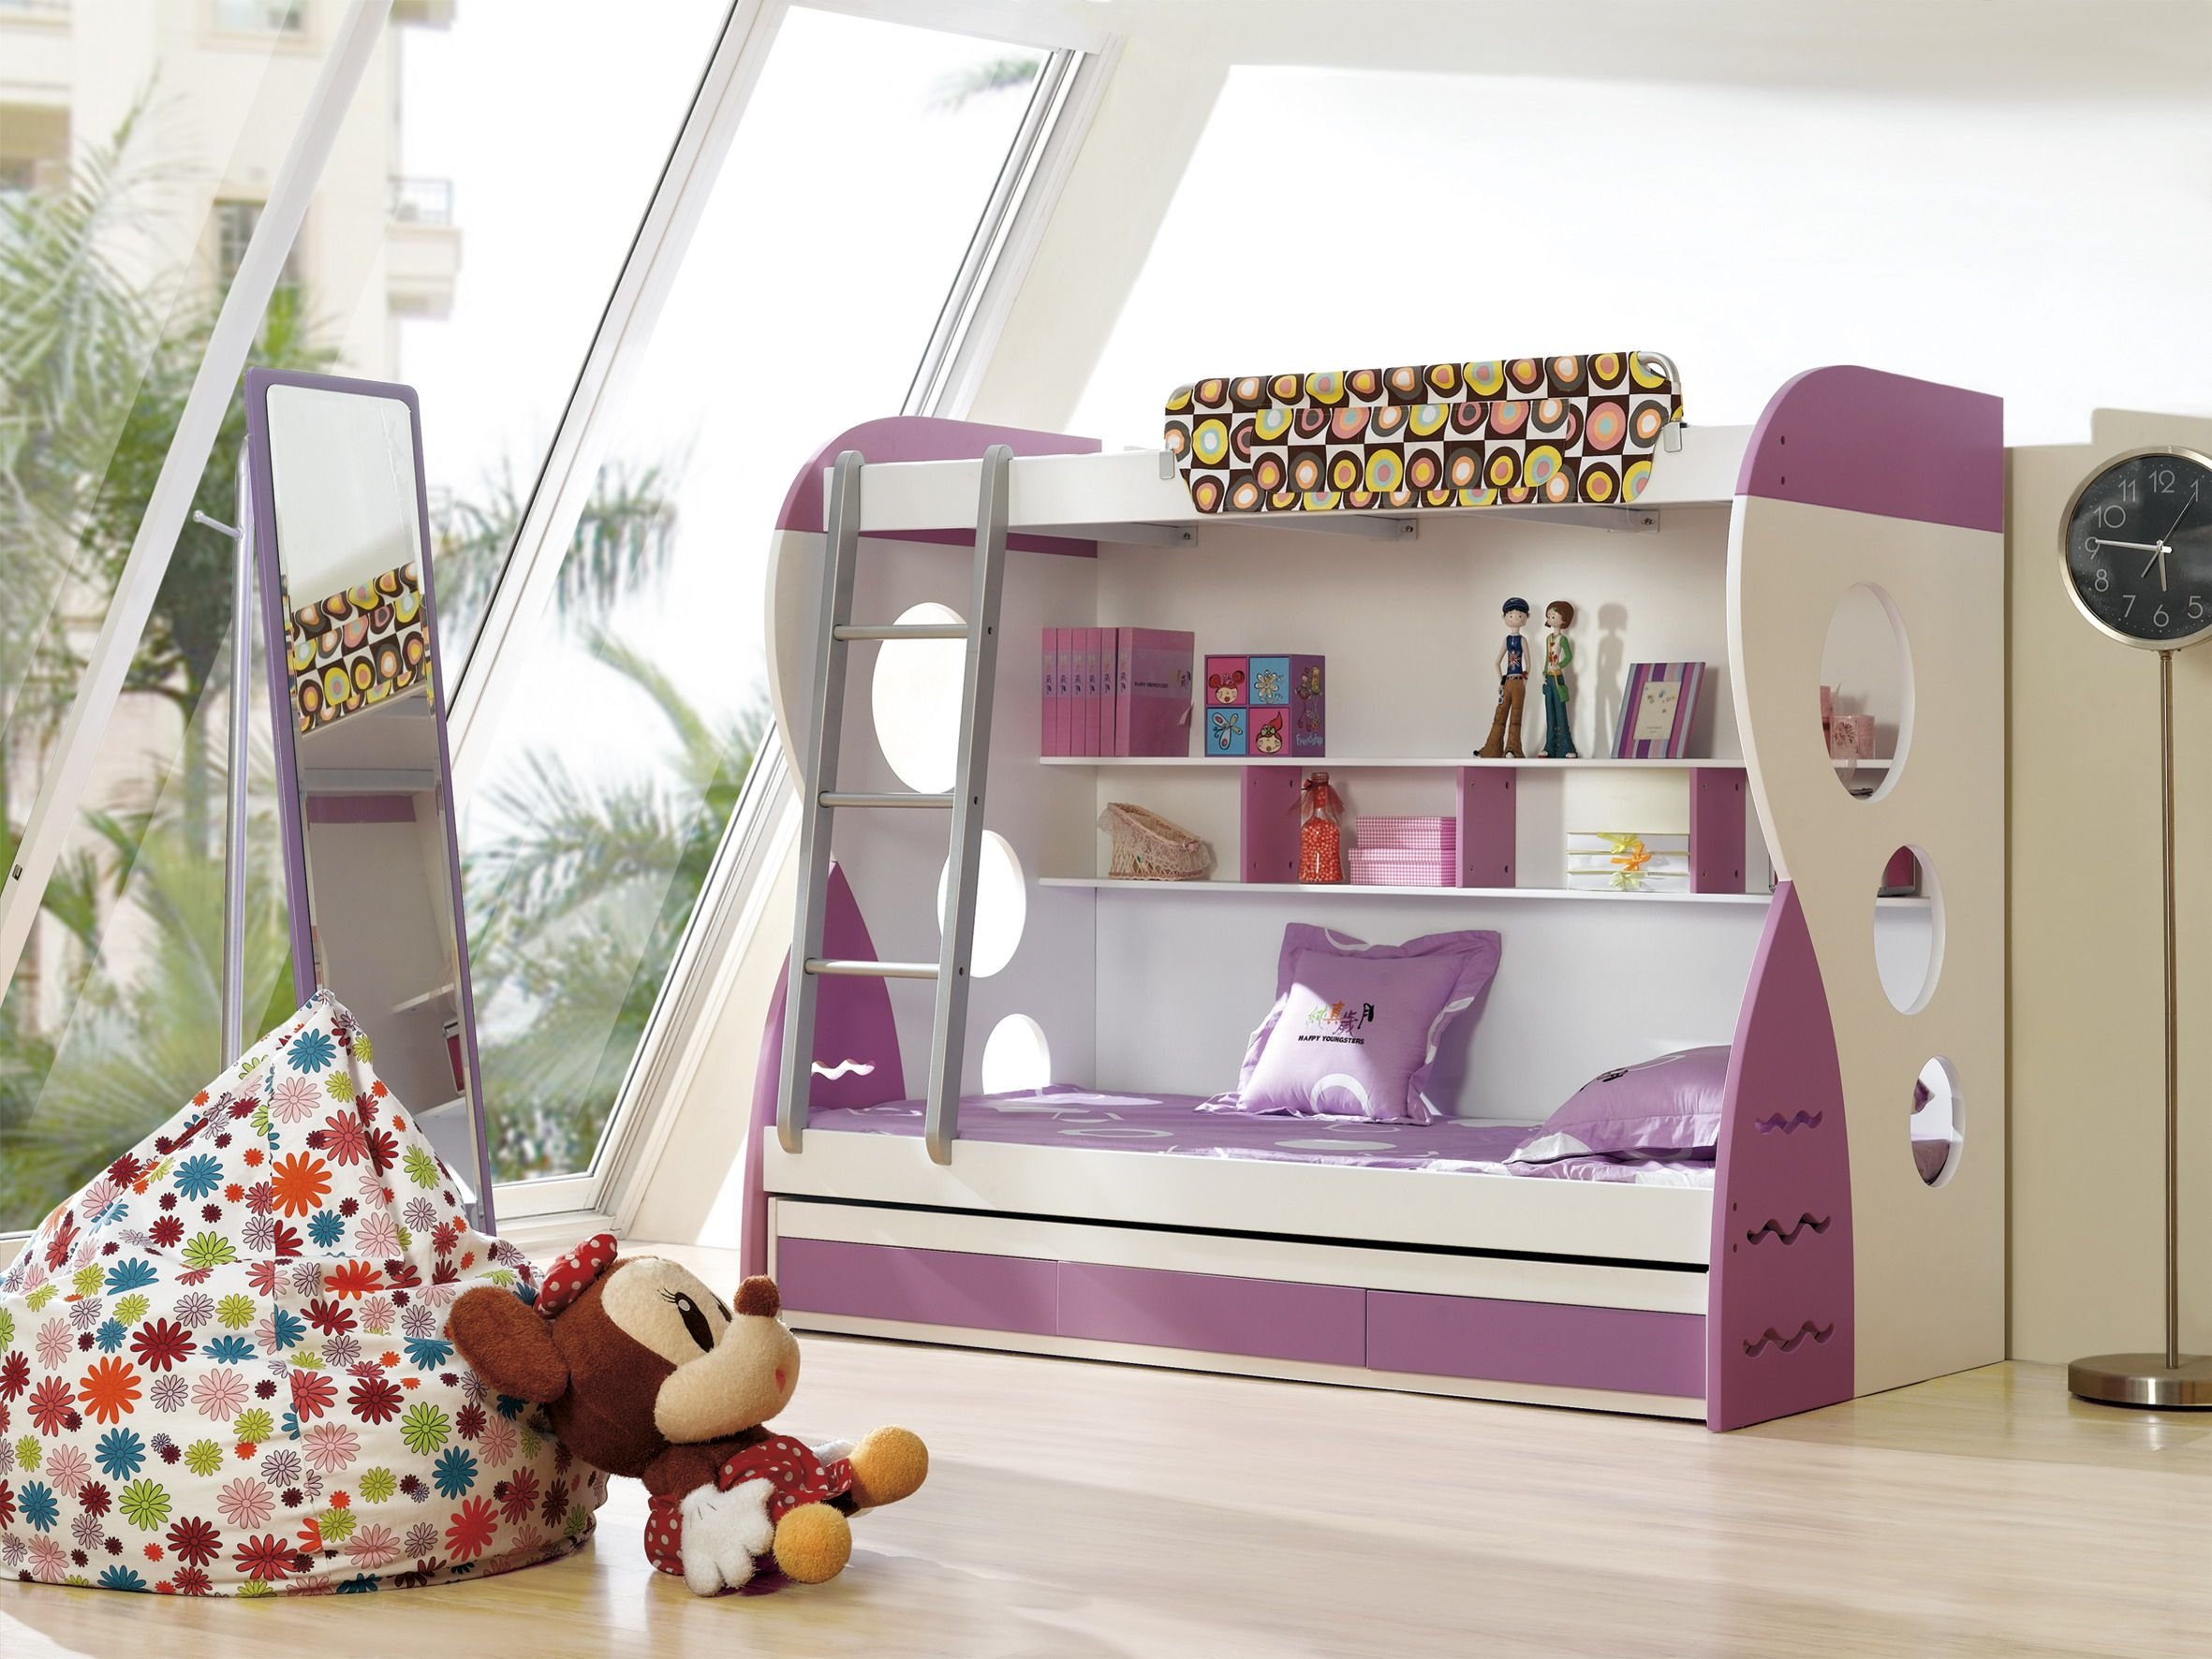 Modern Girl Bunk Beds Design with Colorful Look